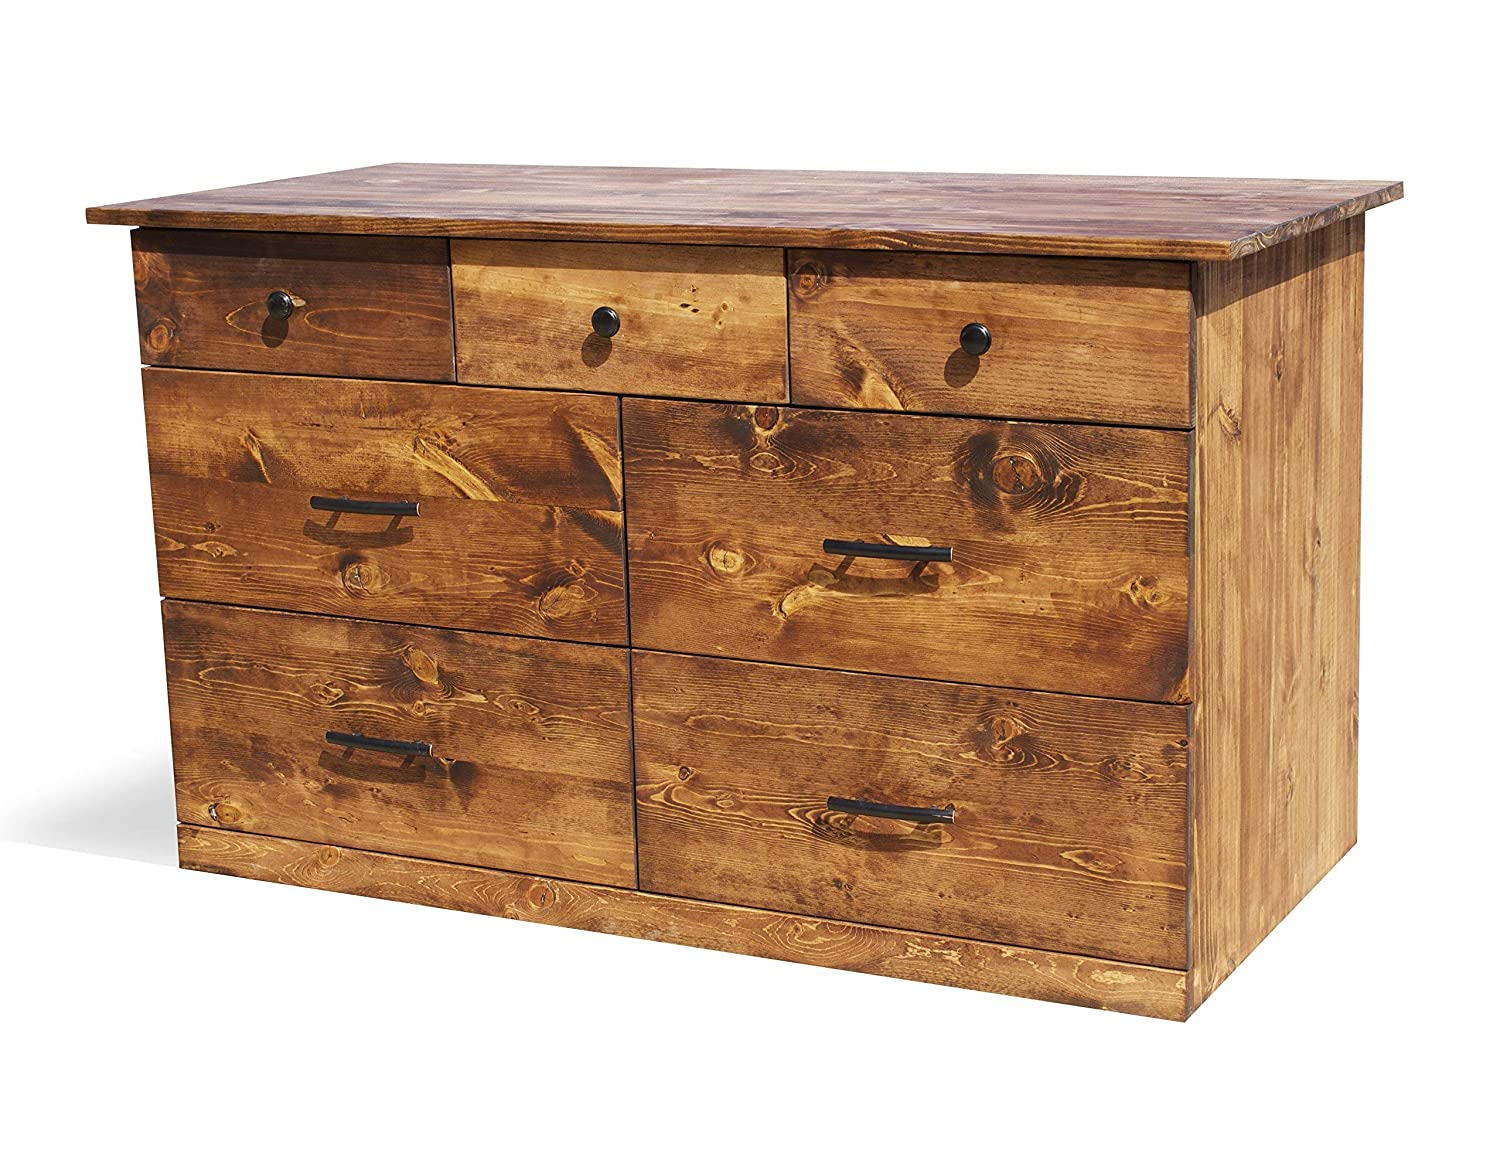 Amazon com solid wood rustic dresser home living bedroom furniture rustic and modern chest of drawers wood bedroom furniture simple dresser